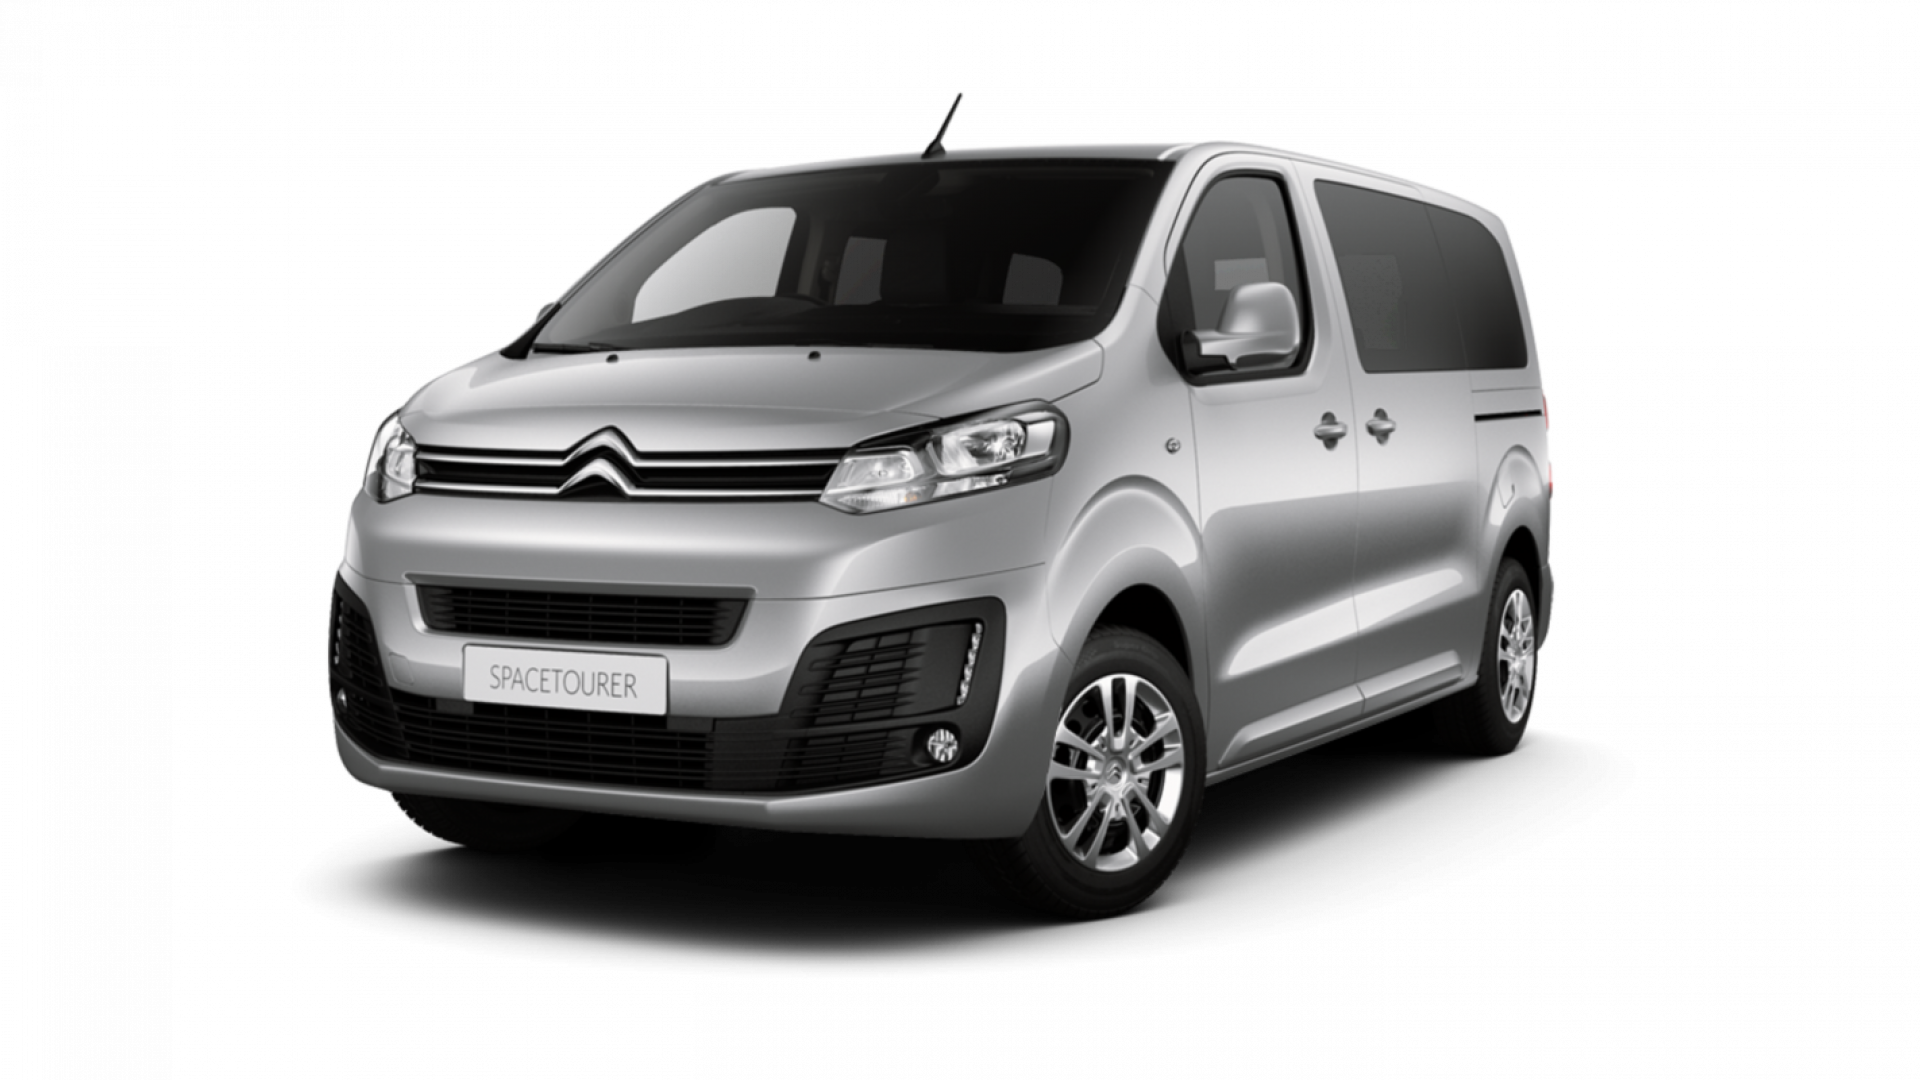 business citroen space tourer estate 1 6 bluehdi business xs 9 seat 5dr robins and day. Black Bedroom Furniture Sets. Home Design Ideas